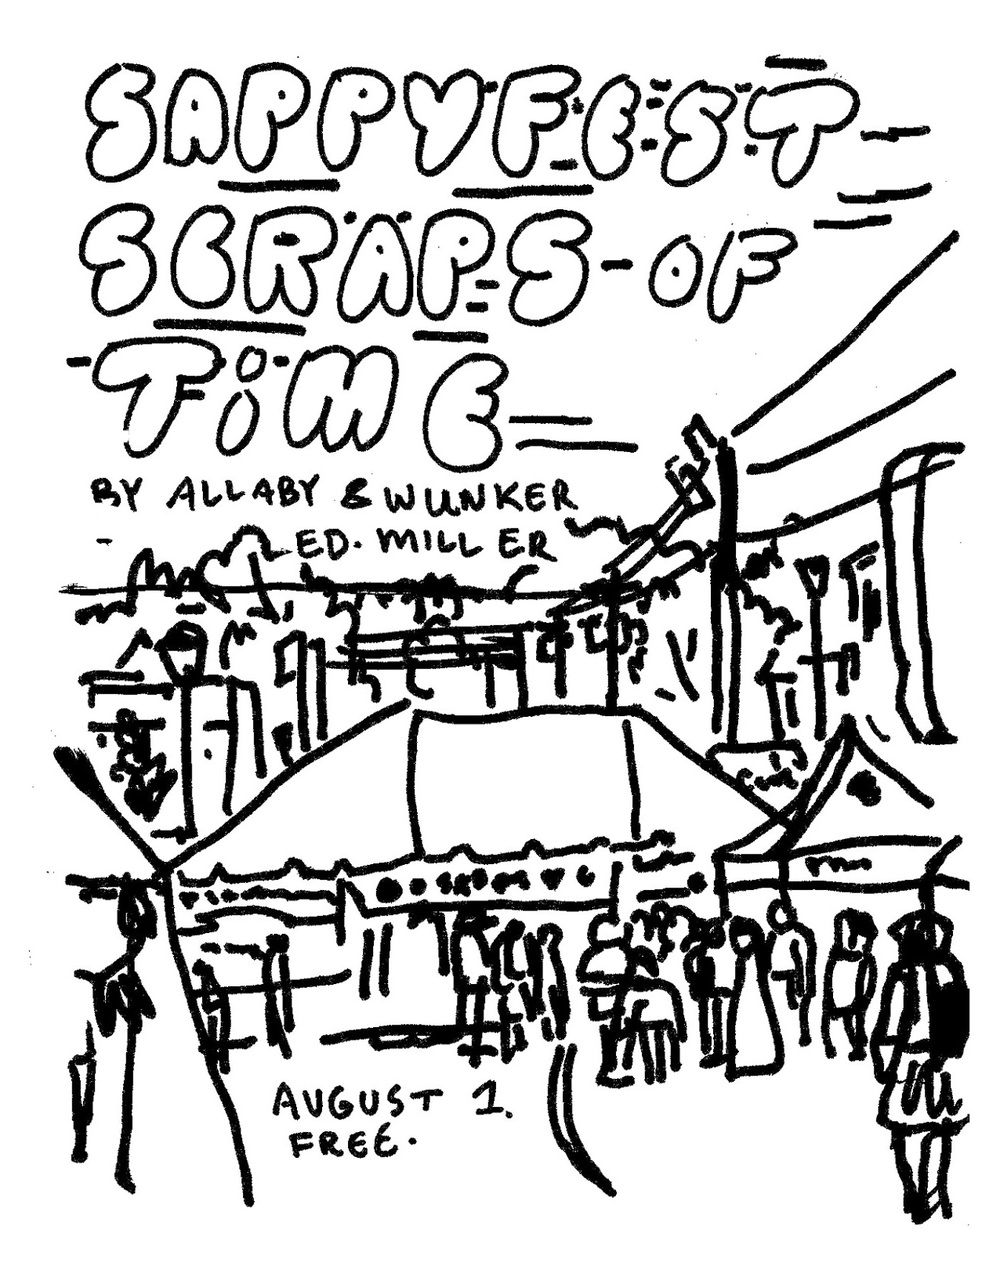 The coloring book project 2nd edition -  It To The Eleventh Edition Of Sappyfest This Summer However We Had Local Artists Patrick Allaby Geodie Miller Erin Wunker And Jerry Ropson Produce